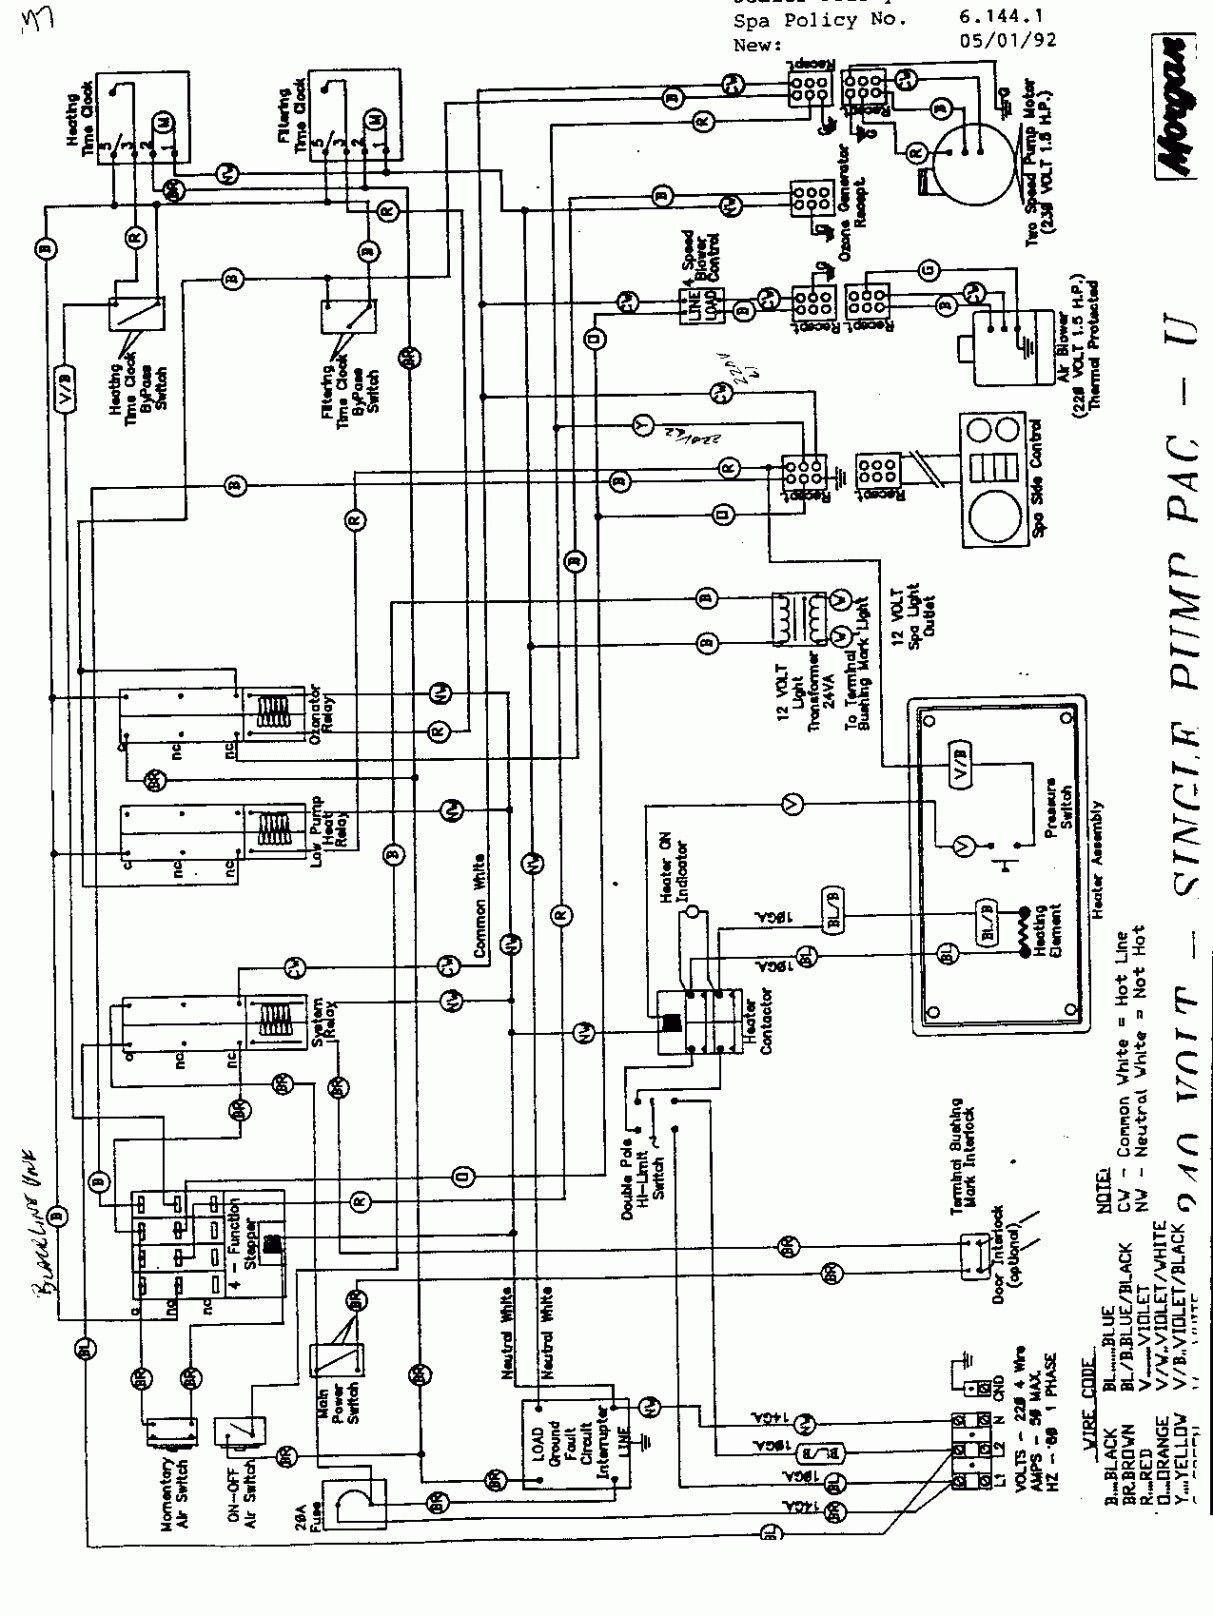 New Gfci Wiring Diagram for Hot Tub #diagram #